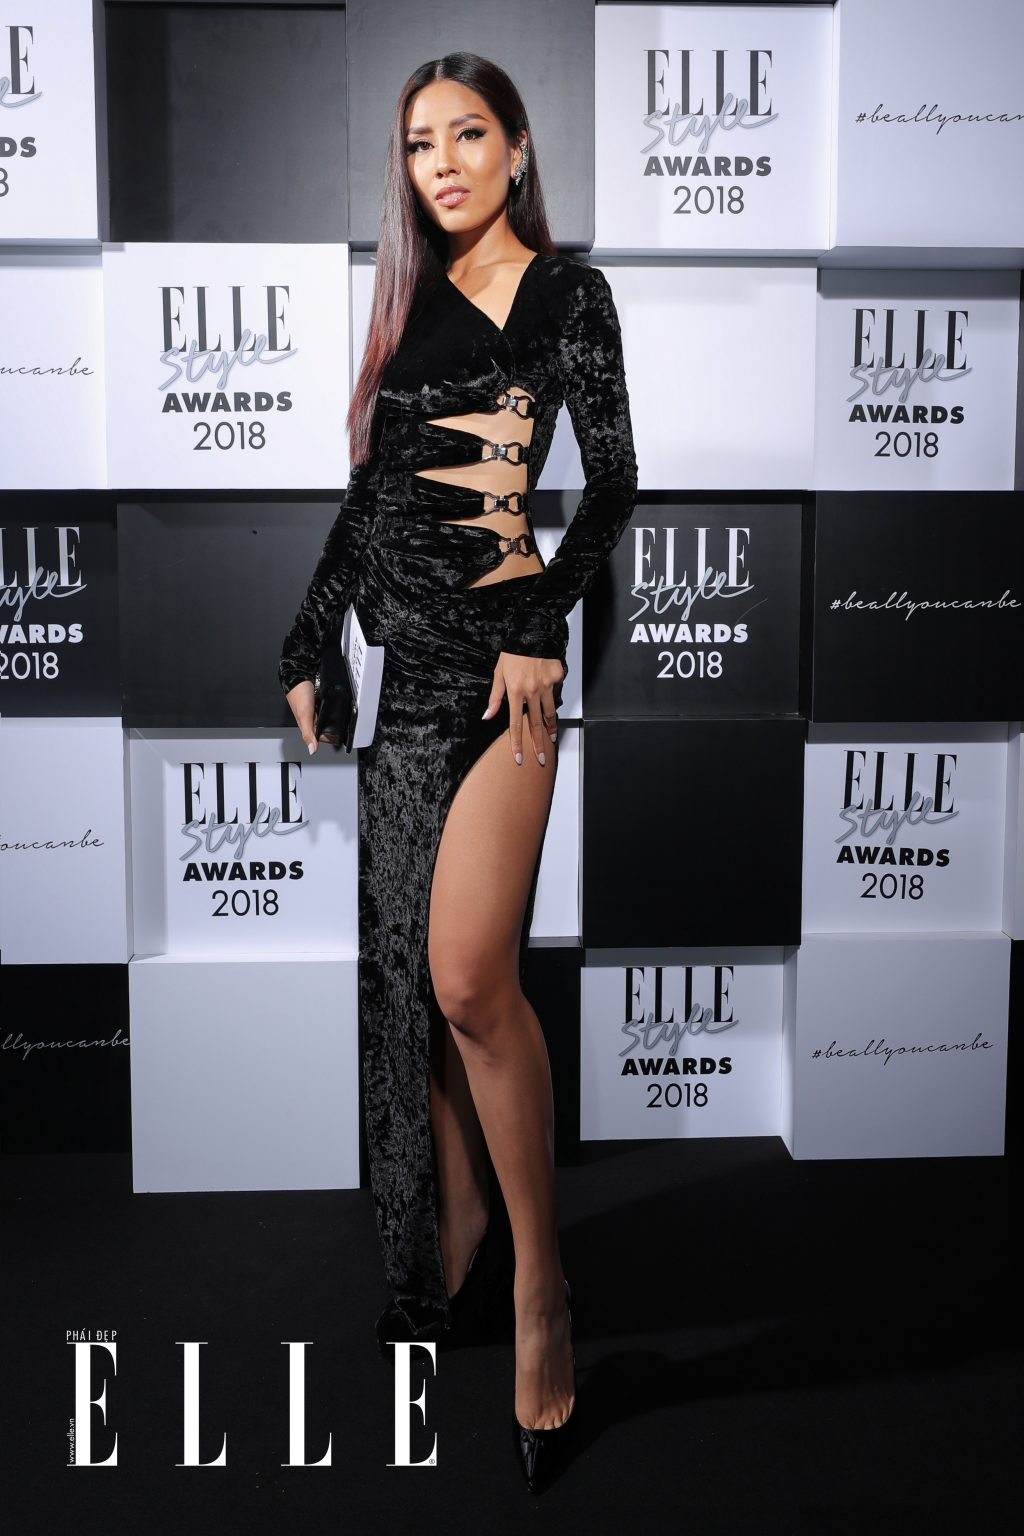 ELLE Style Awards 2018 Loan Nguyen